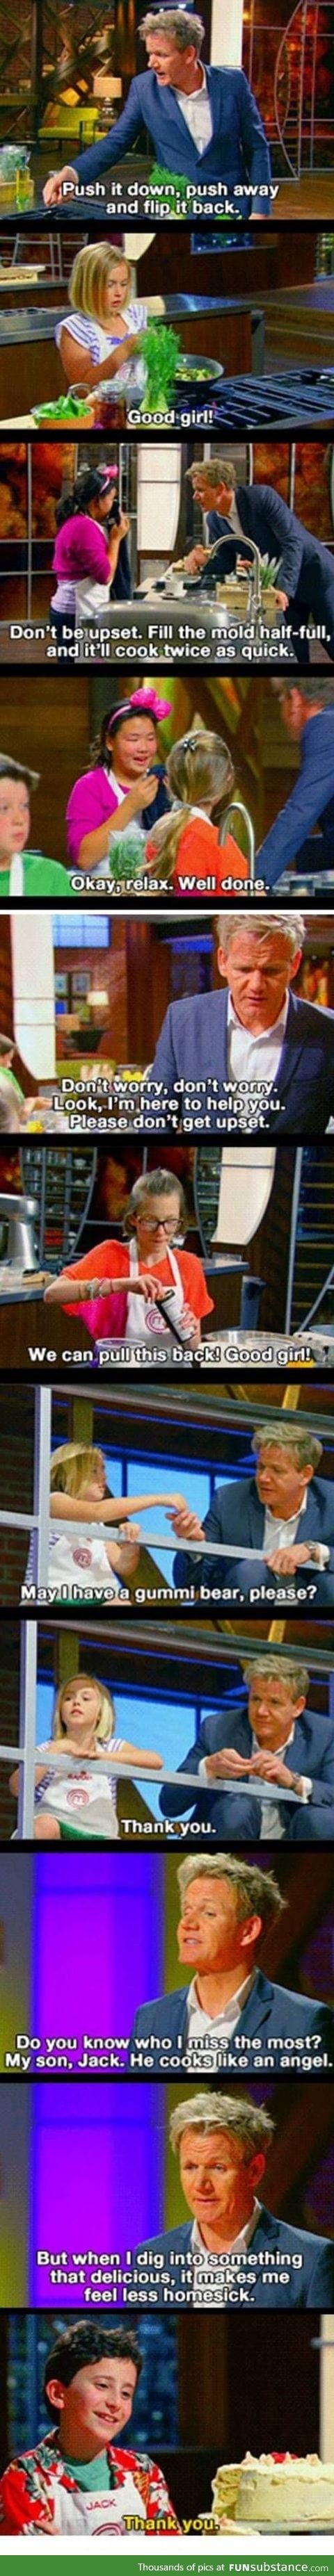 Gordon Ramsay's not in hell when it comes to kids.